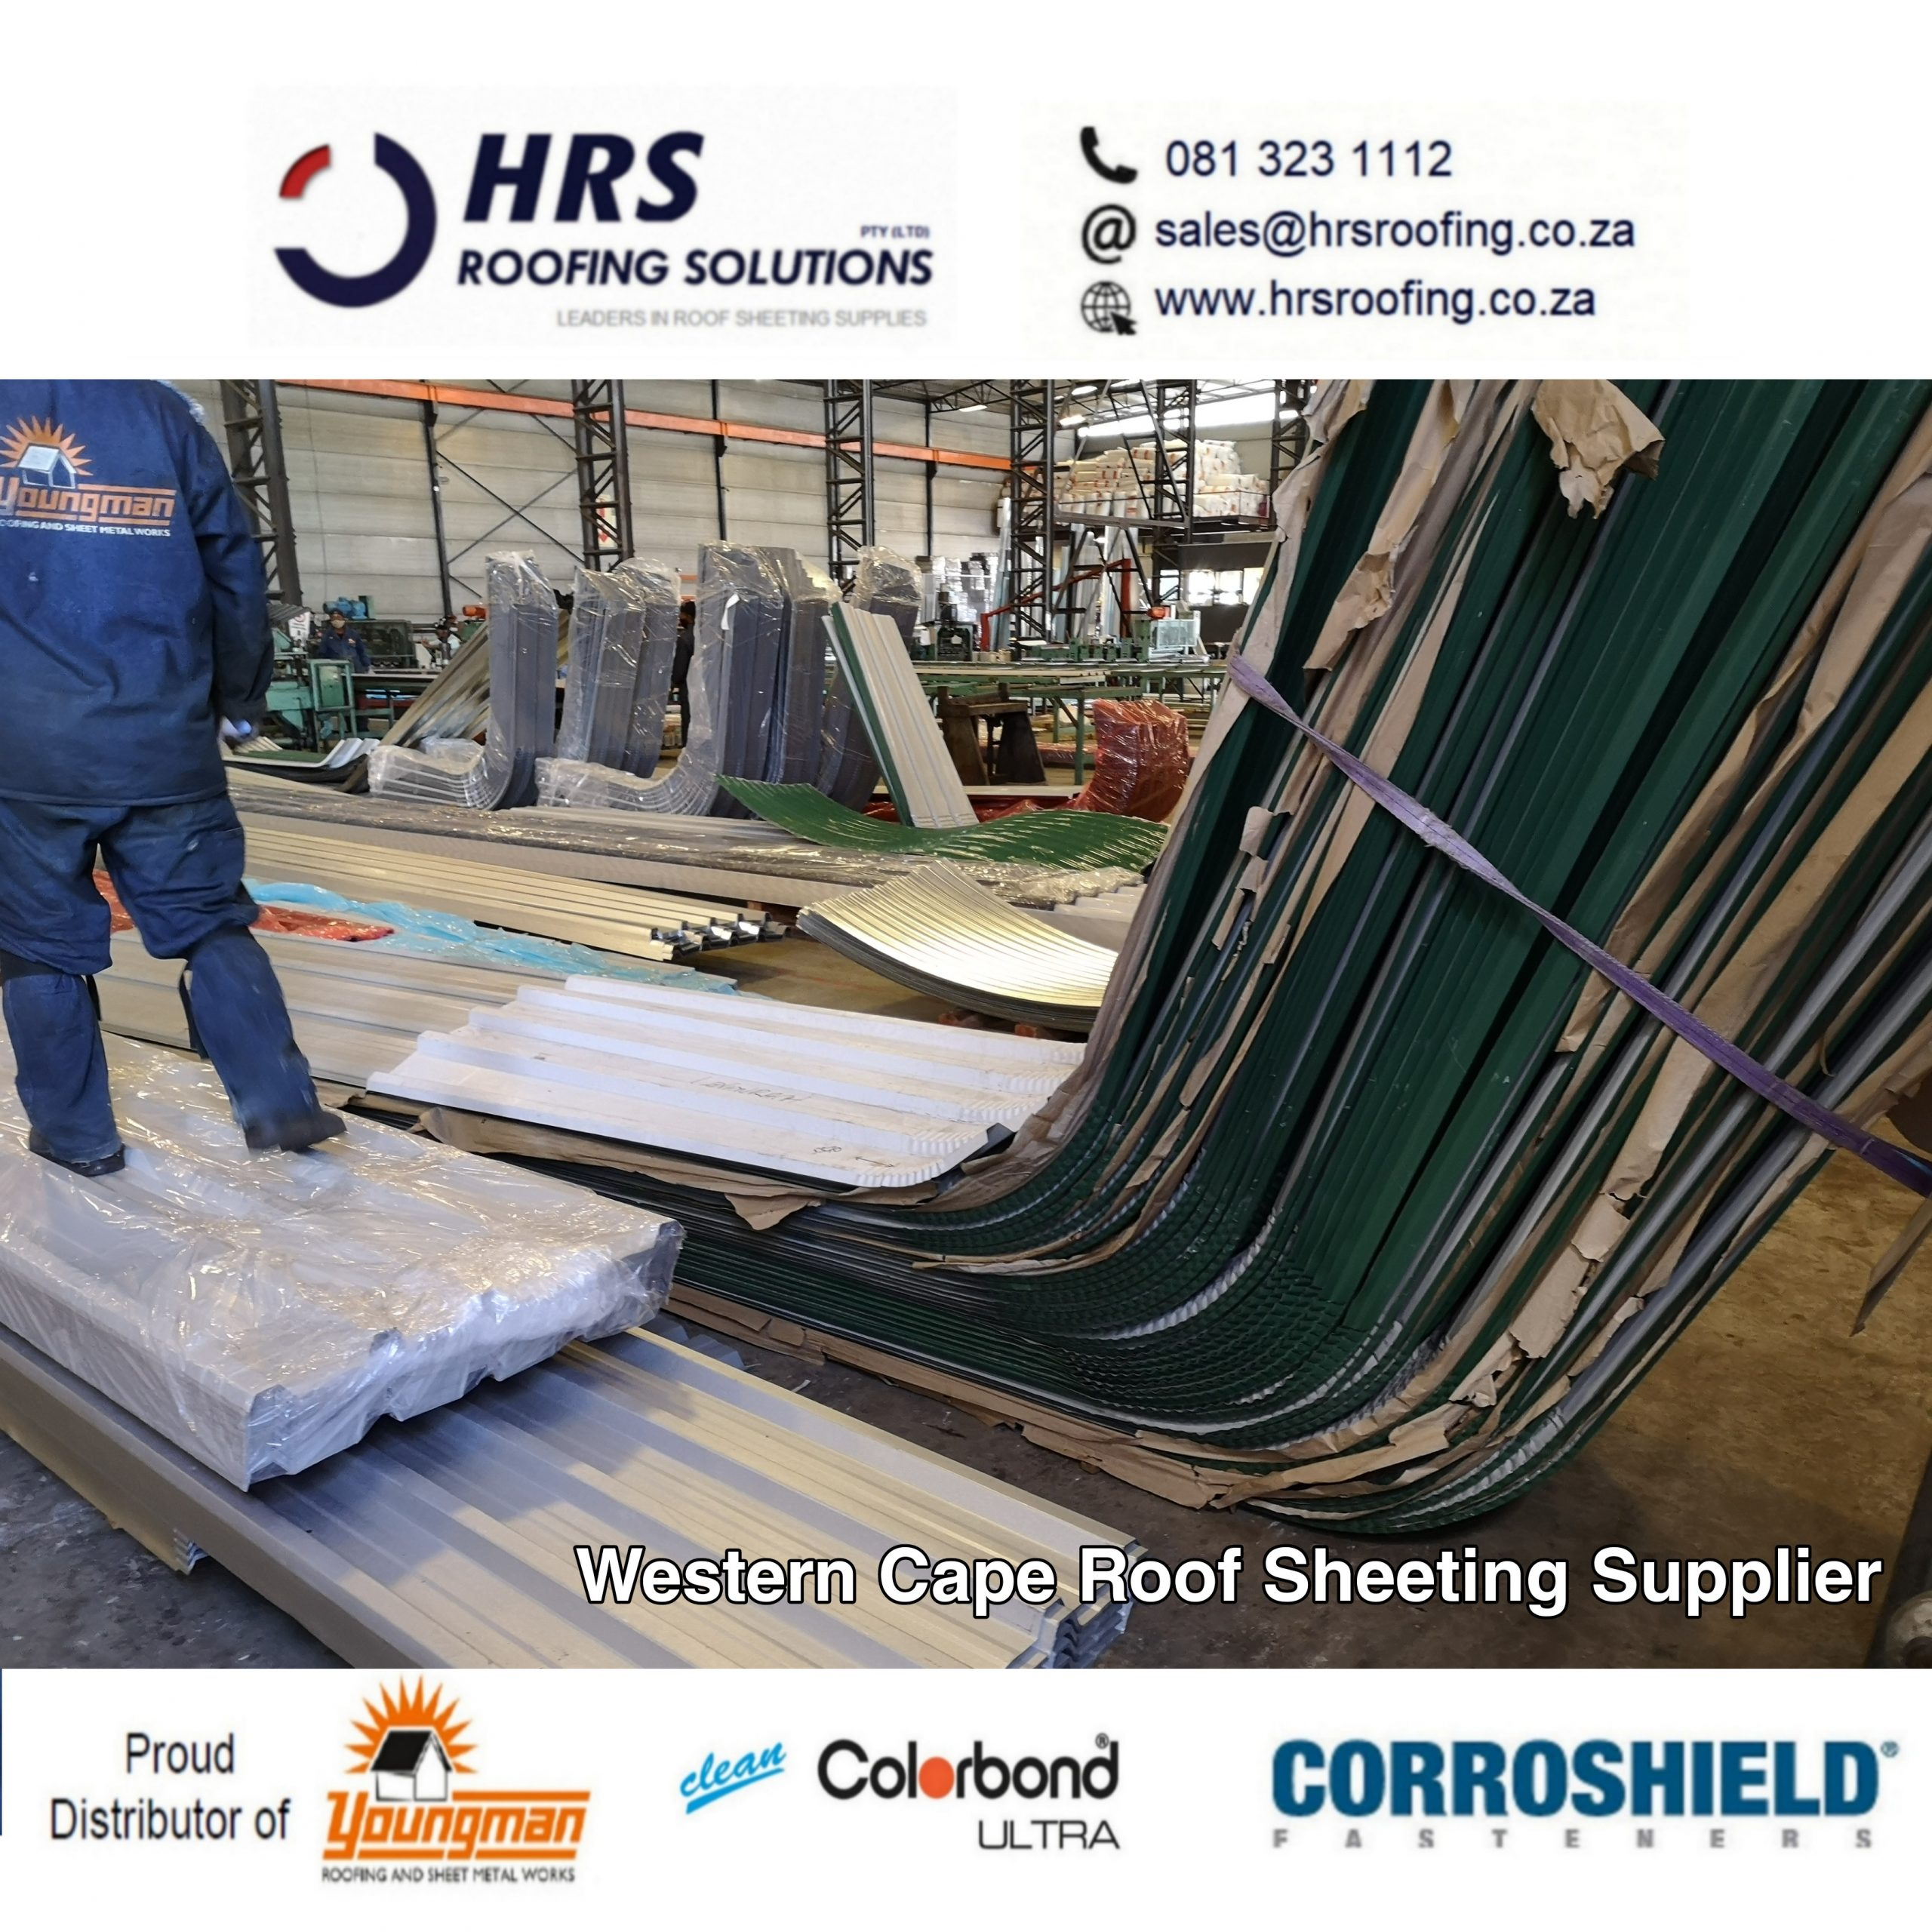 hrs roofing solutions ibr springlock 700 clip lock colorbond roof sheet supplier 3